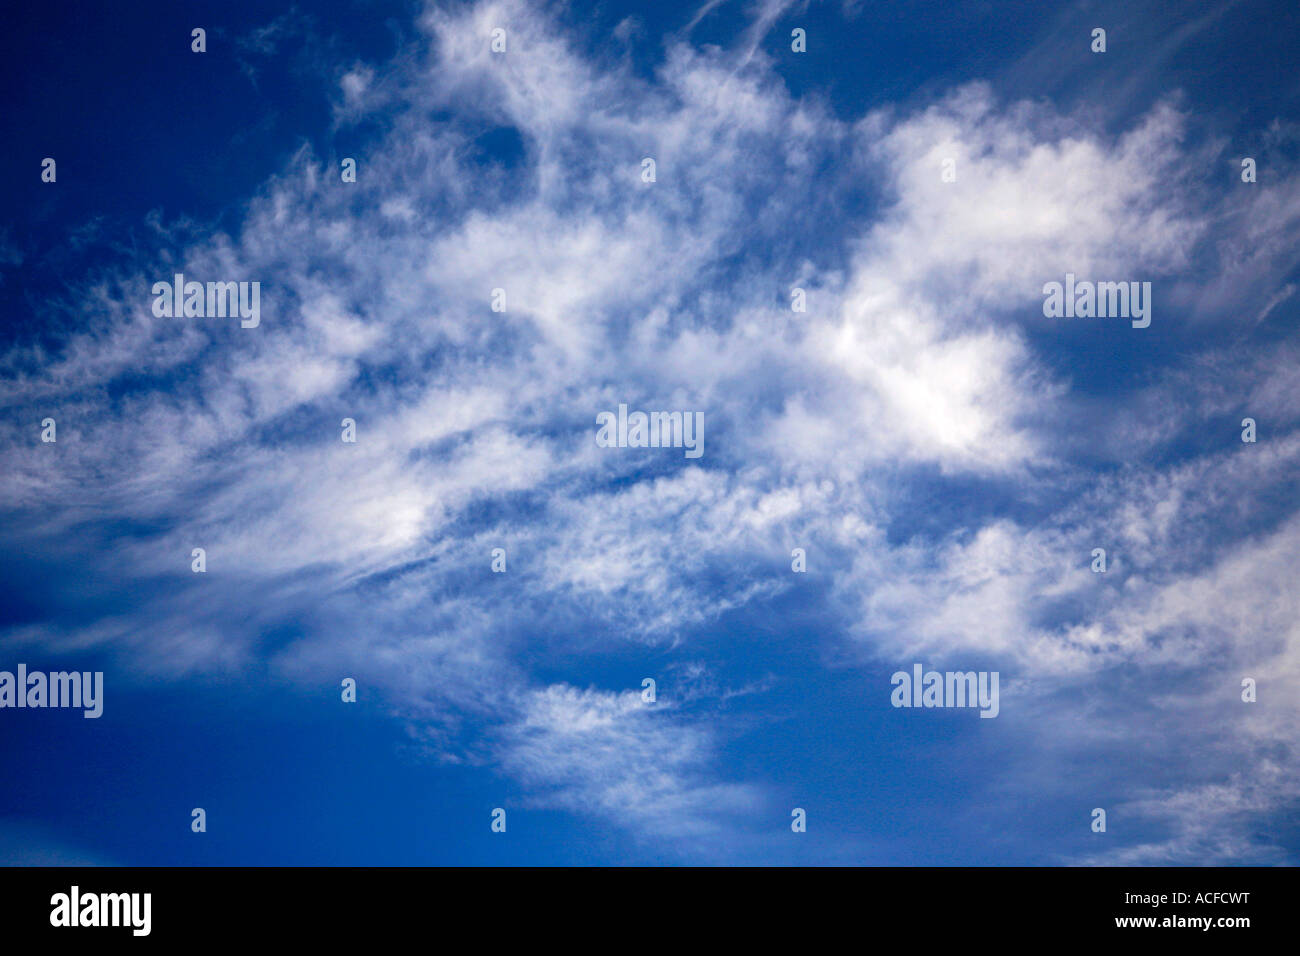 White Cirrus clouds in a bright blue polarised sky Stock Photo